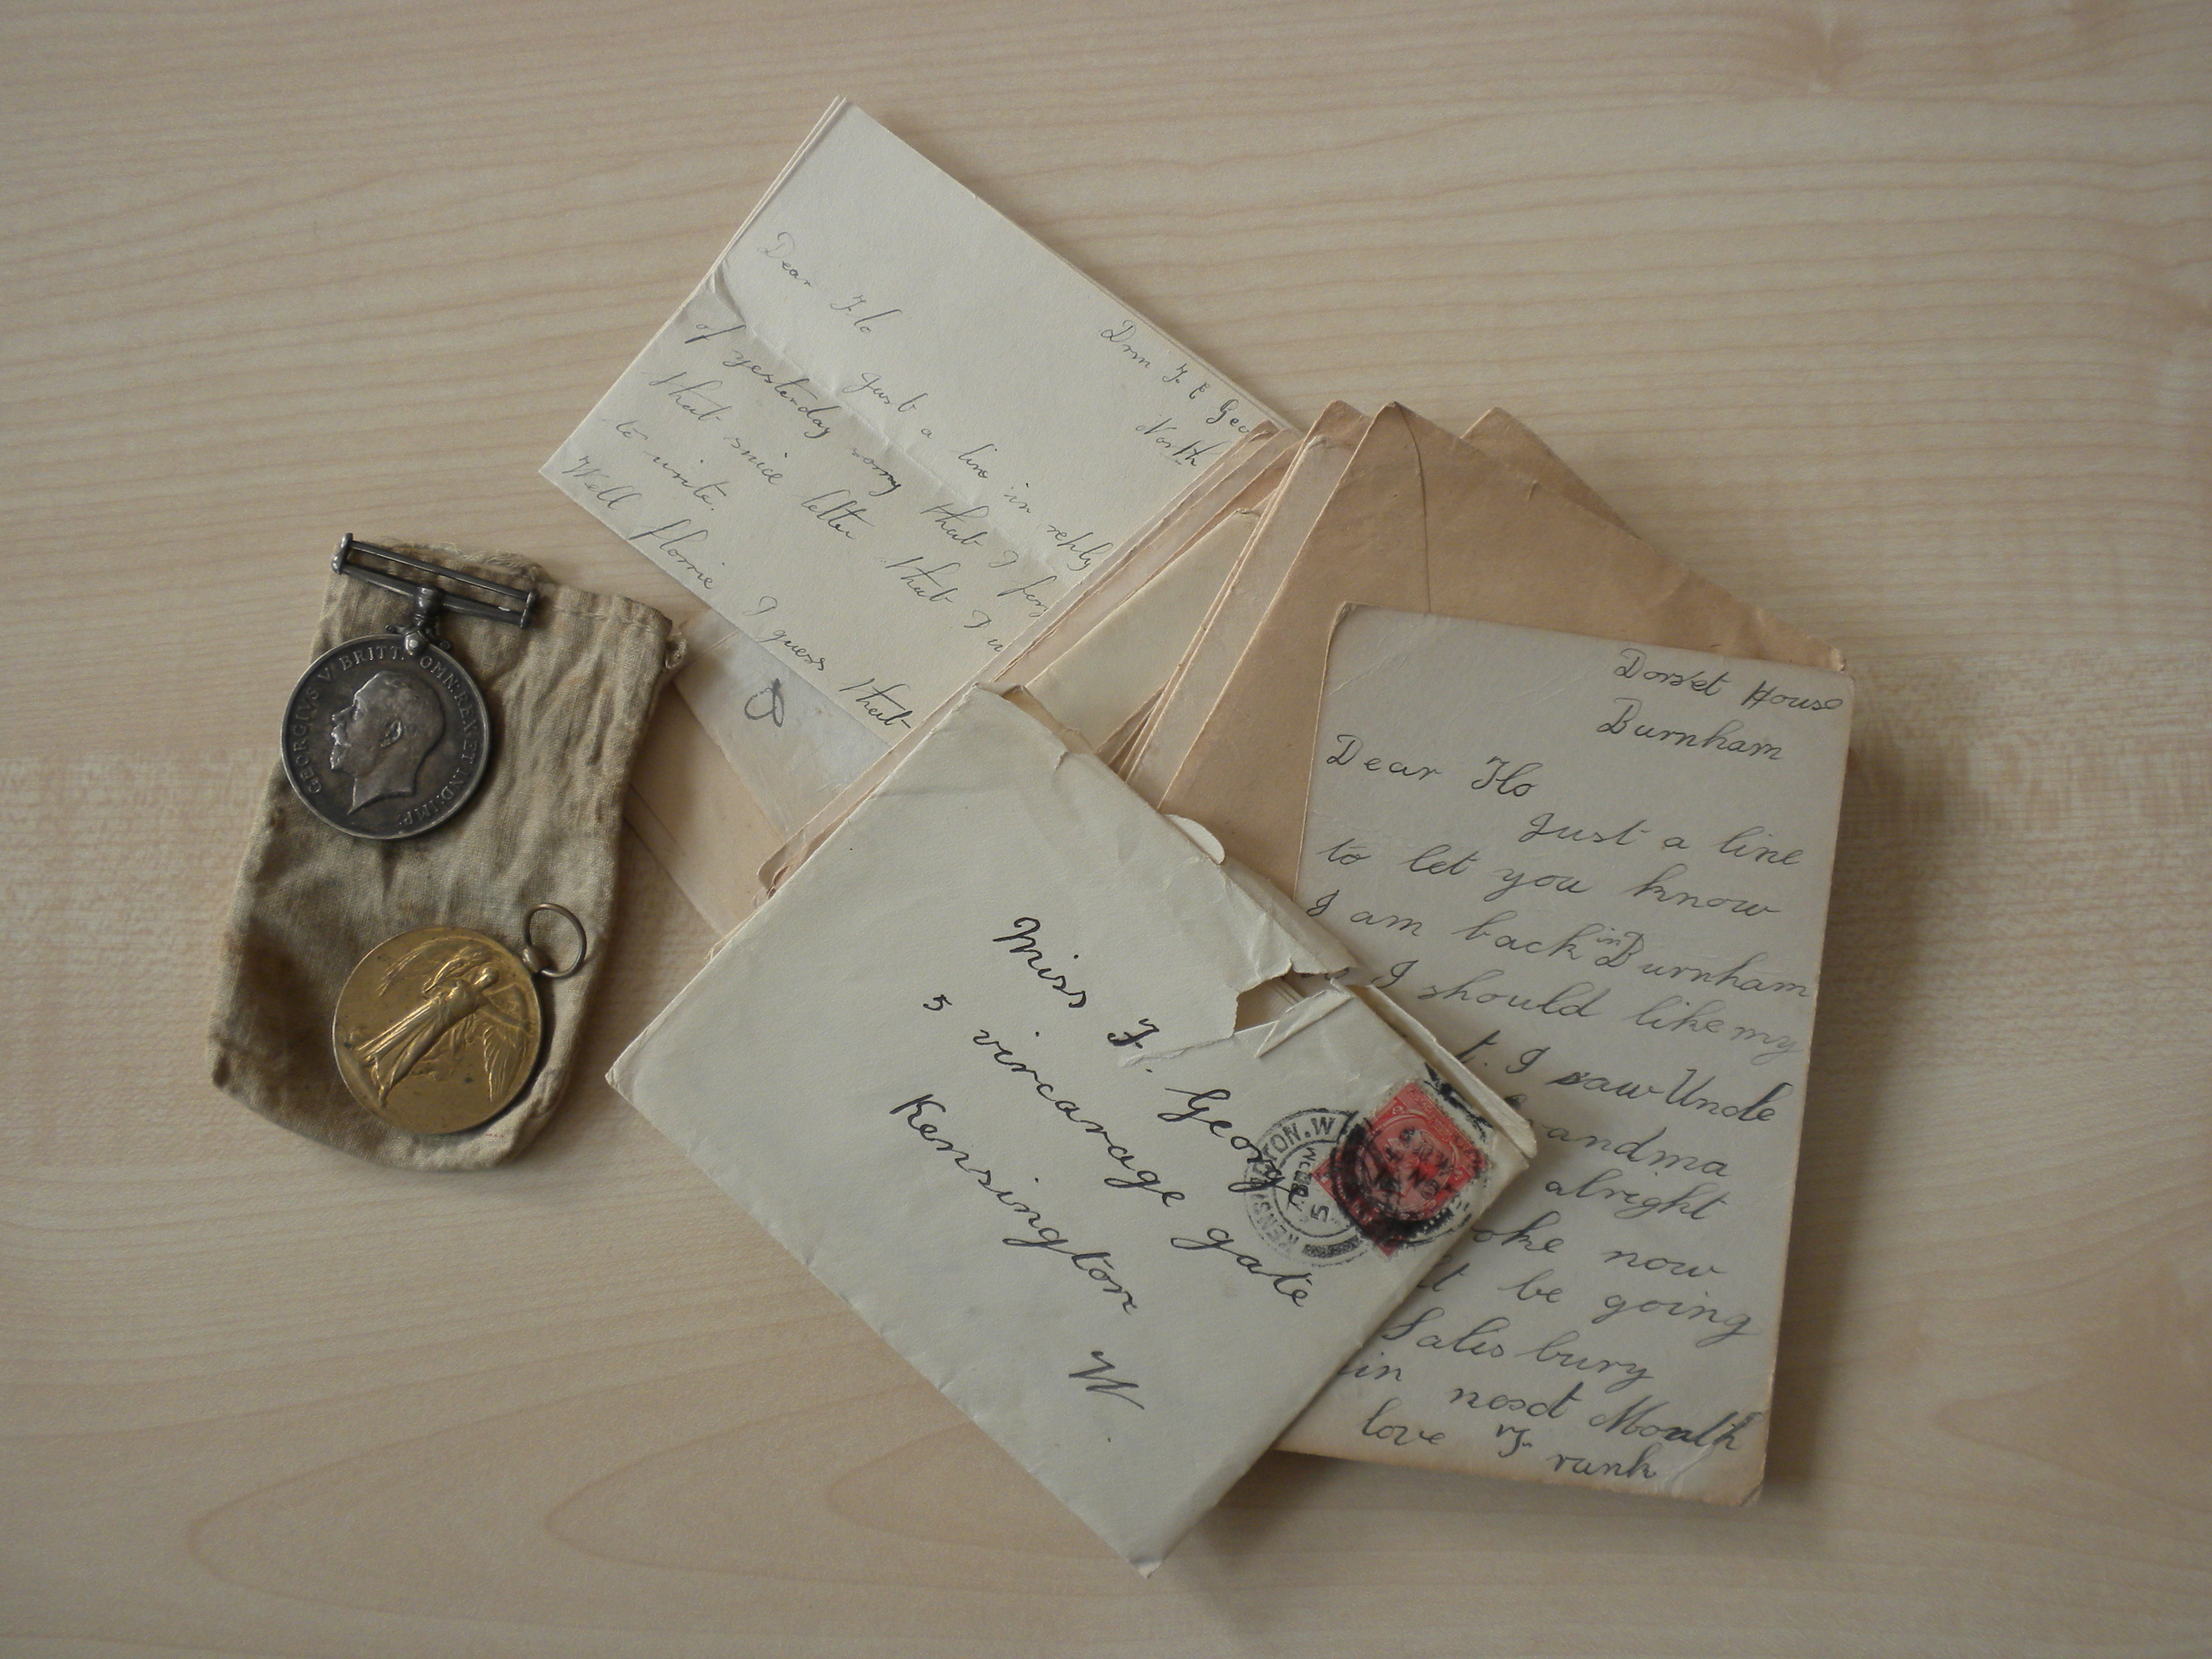 medals and letters from Frank George, buried in Lijssenthoek